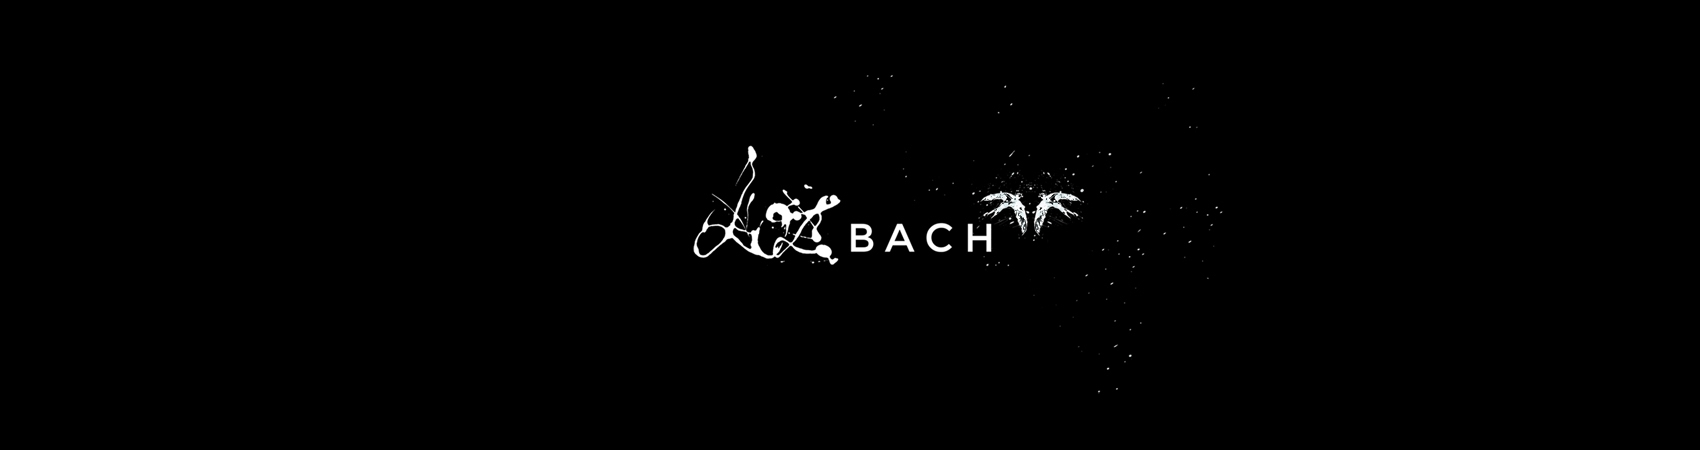 Elodie Bachelier (@lod-bach) Cover Image